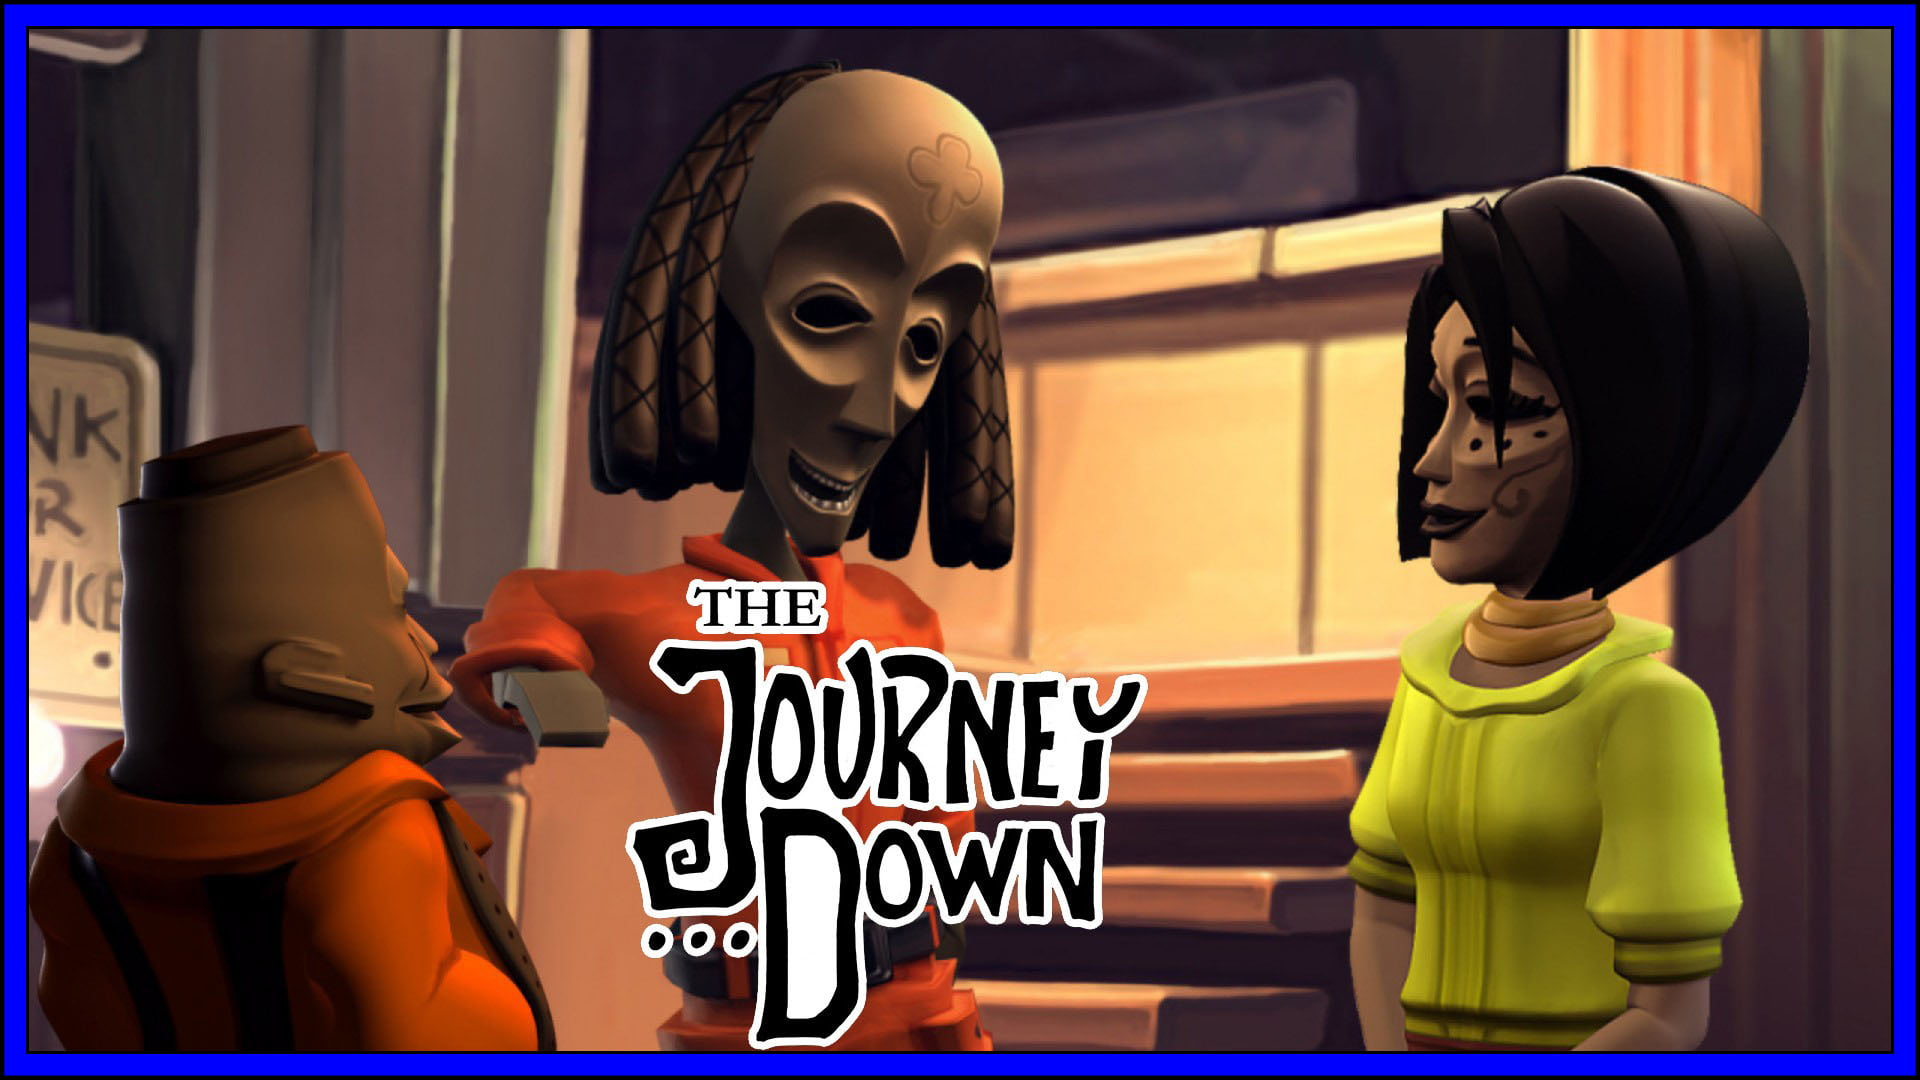 The Journey Down Fi3